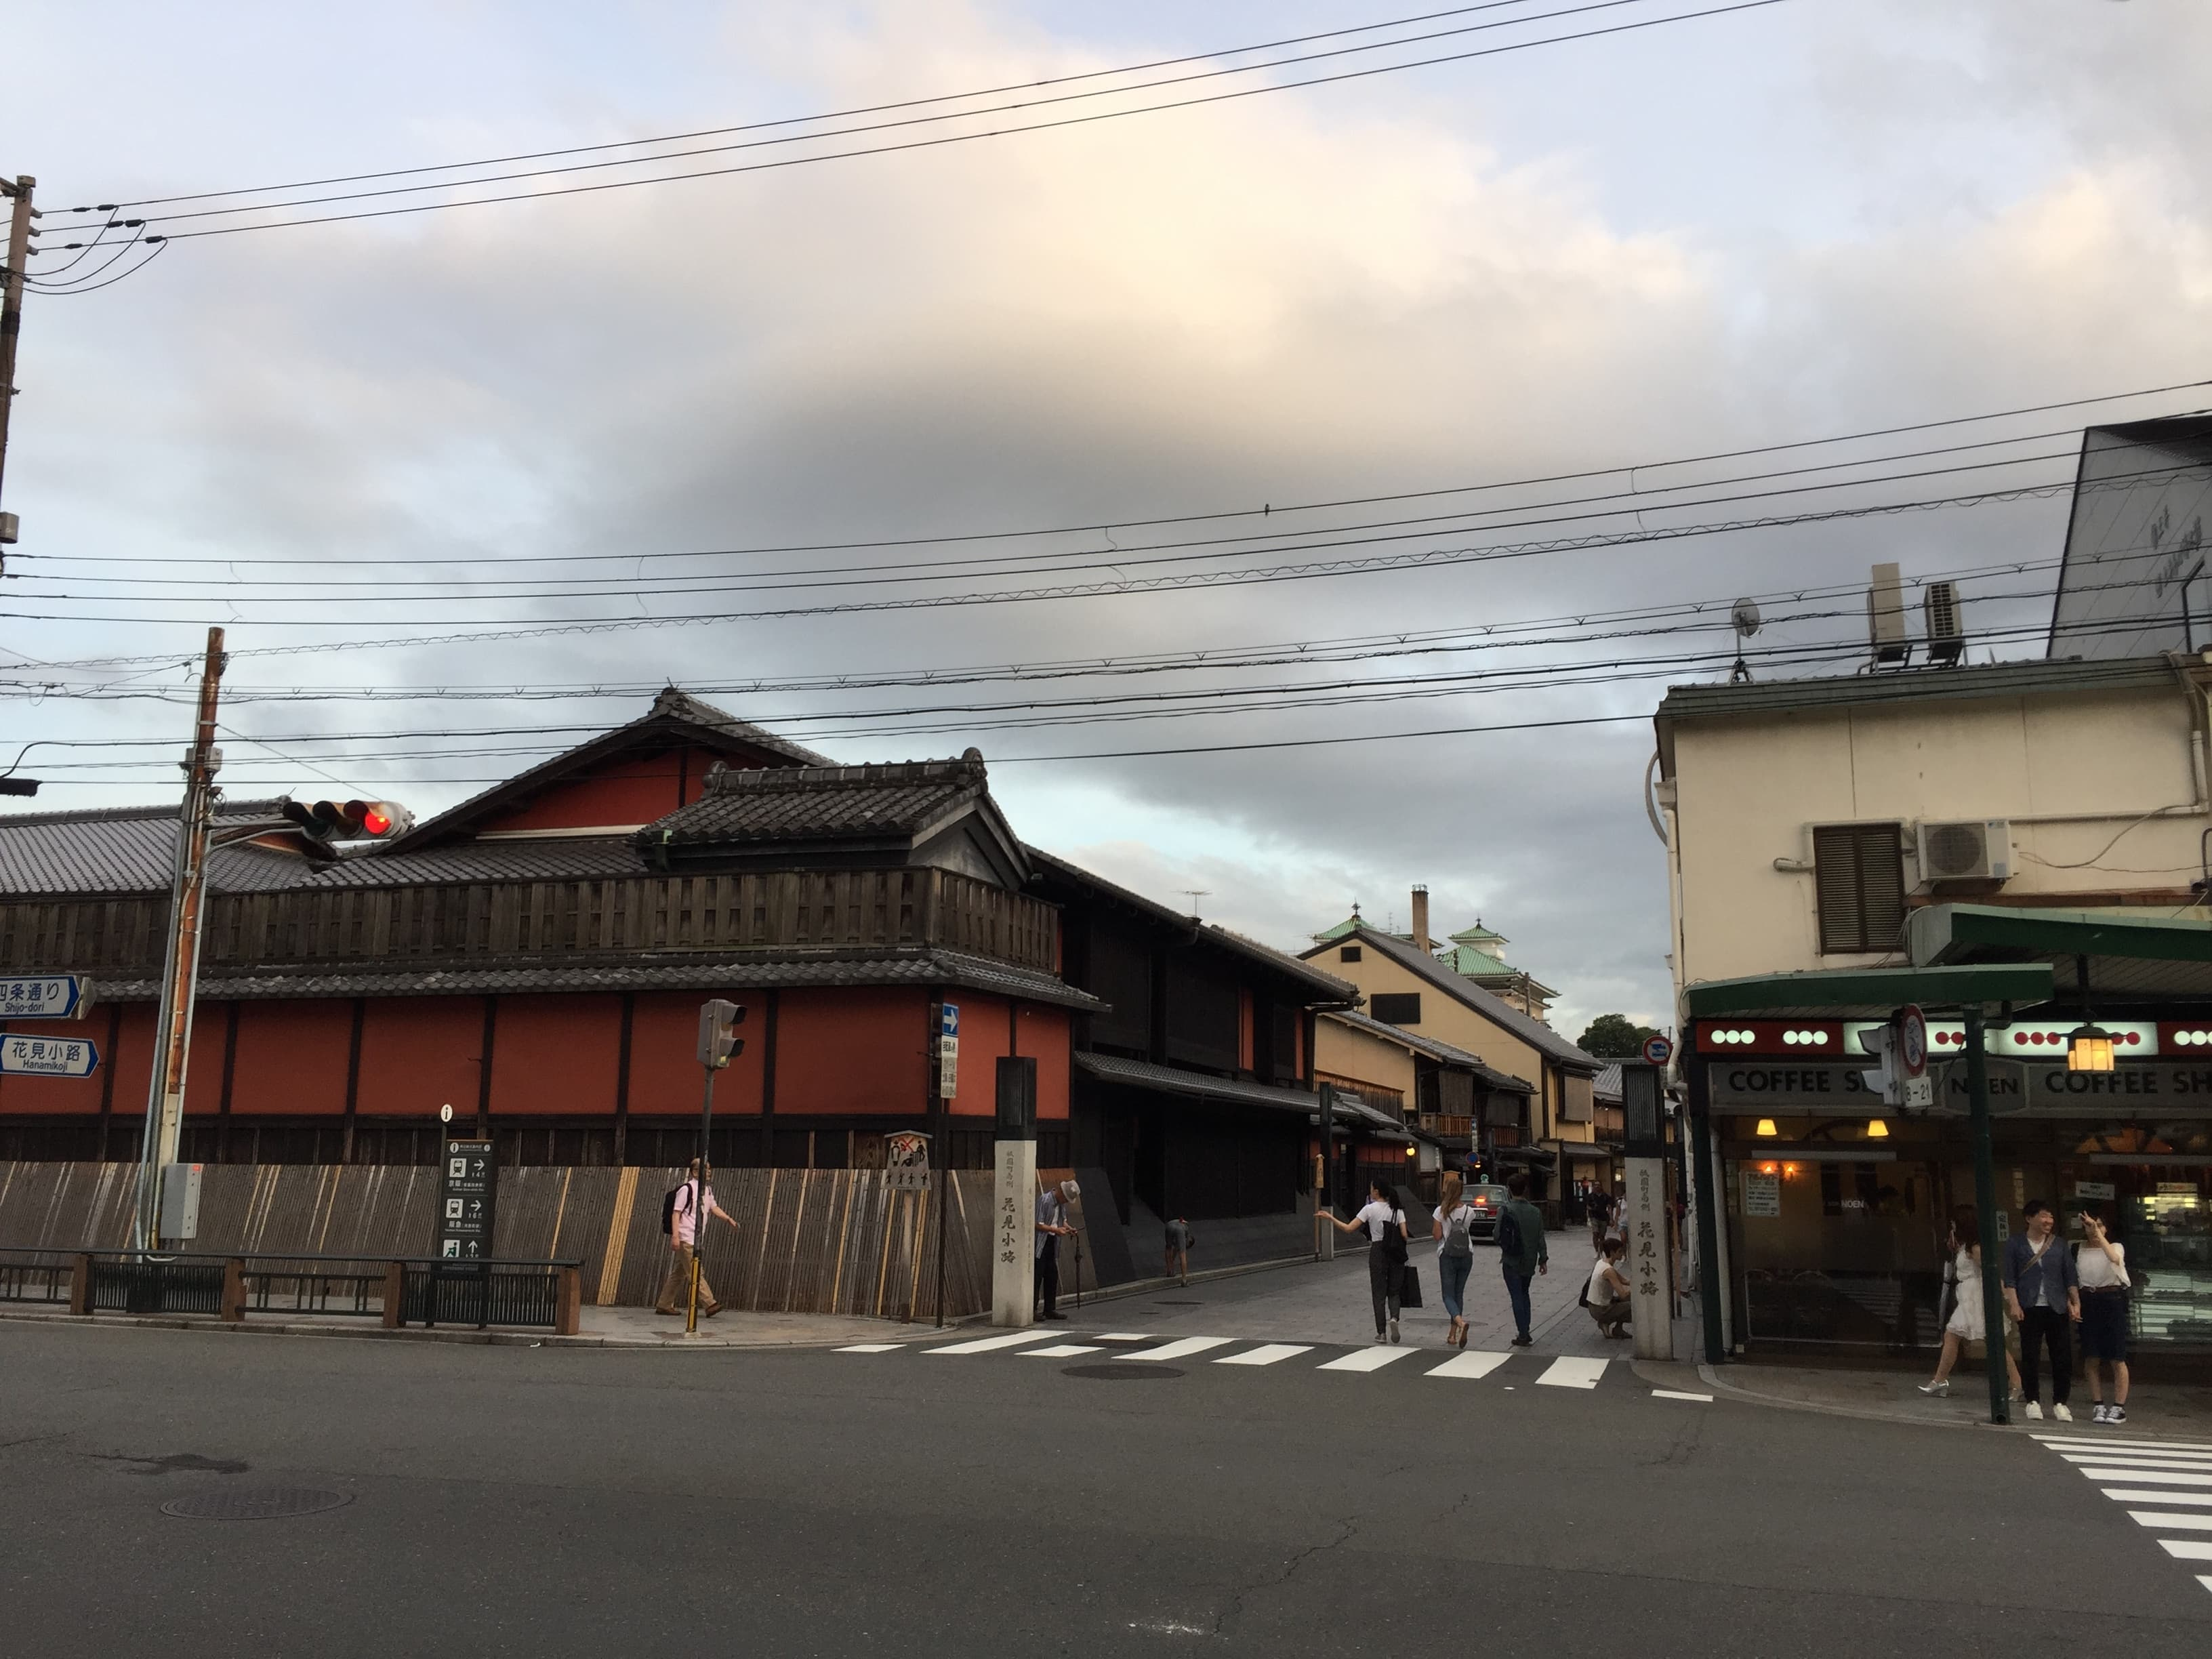 This is the entrance to the south side of Hanamikoji Street in Kyoto